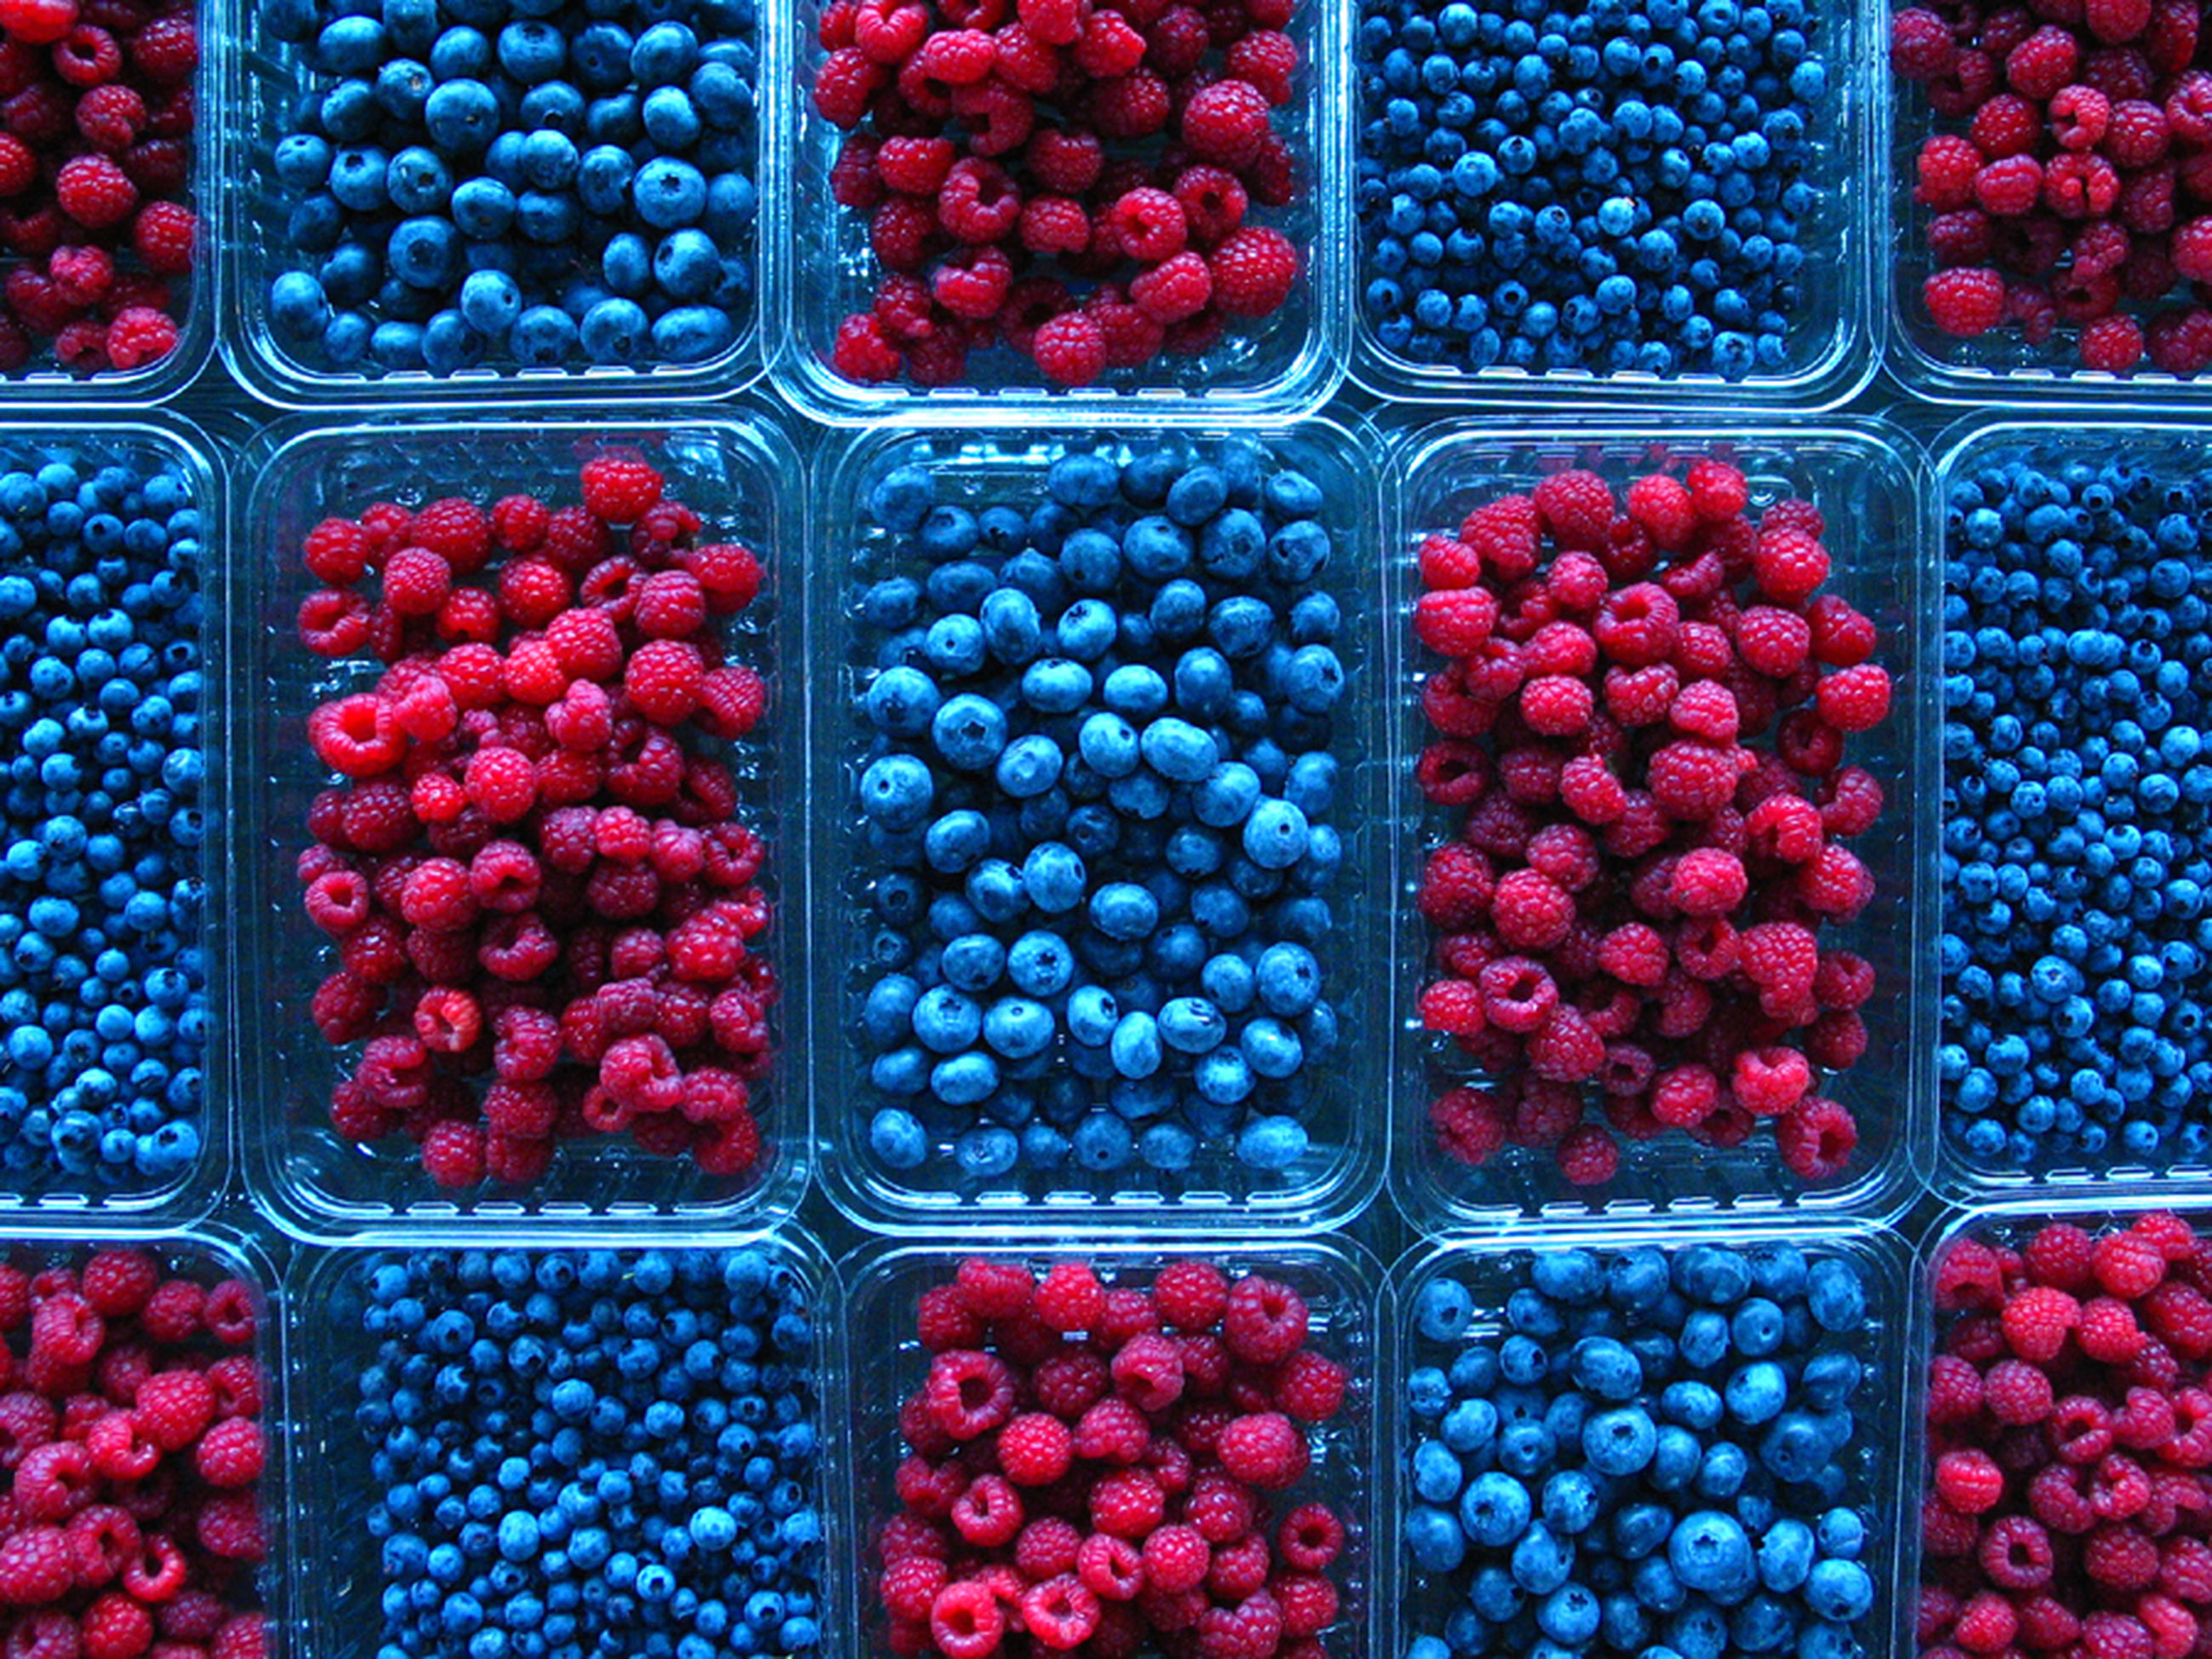 berry fruit, full frame, fruit, food and drink, blueberry, food, healthy eating, container, backgrounds, for sale, choice, blackberry - fruit, raspberry, large group of objects, freshness, no people, multi colored, wellbeing, variation, abundance, red currant